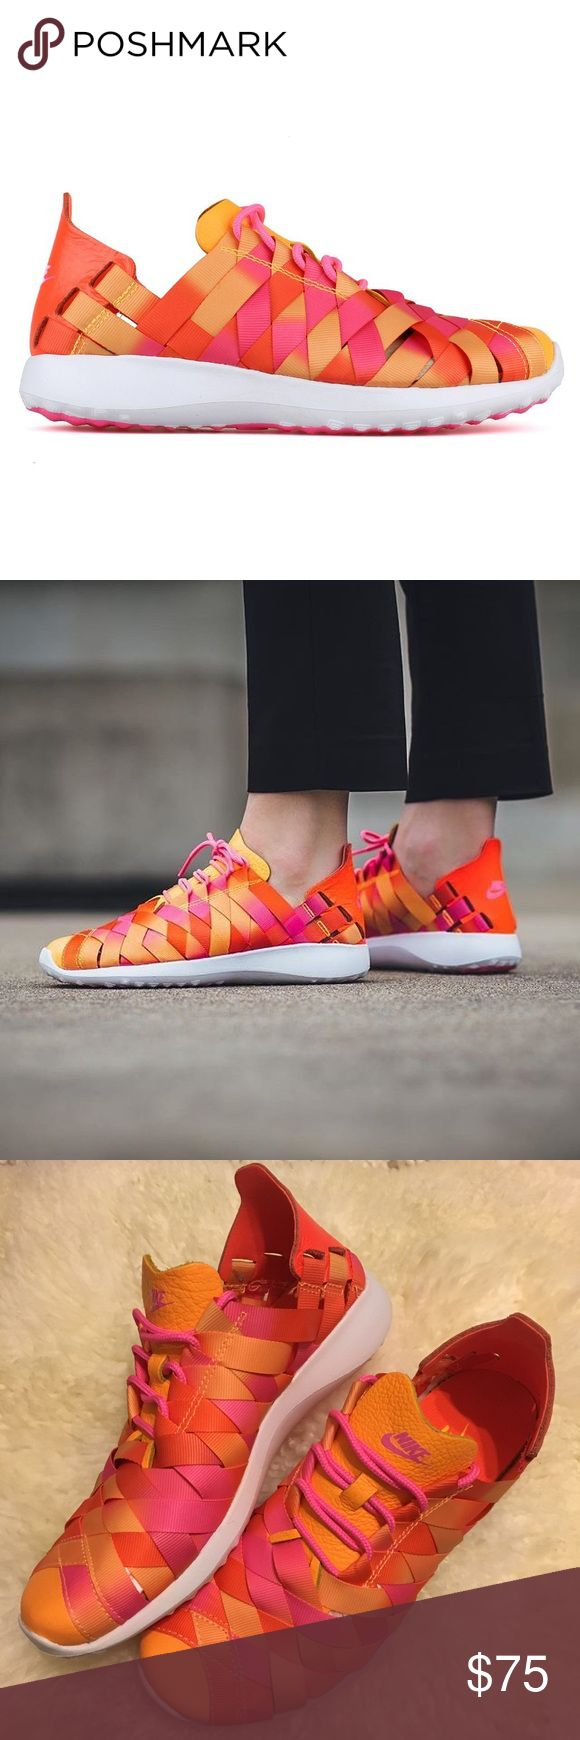 Nike Juvenate Woven Sneakers brand new nike juvenate woven sneakers in color pink blast / laser orange • women's US size 7 • fits true to size • in perfect condition, very small snag on the right shoe, visible in the last photo • retail $110 Nike Shoes Athletic Shoes